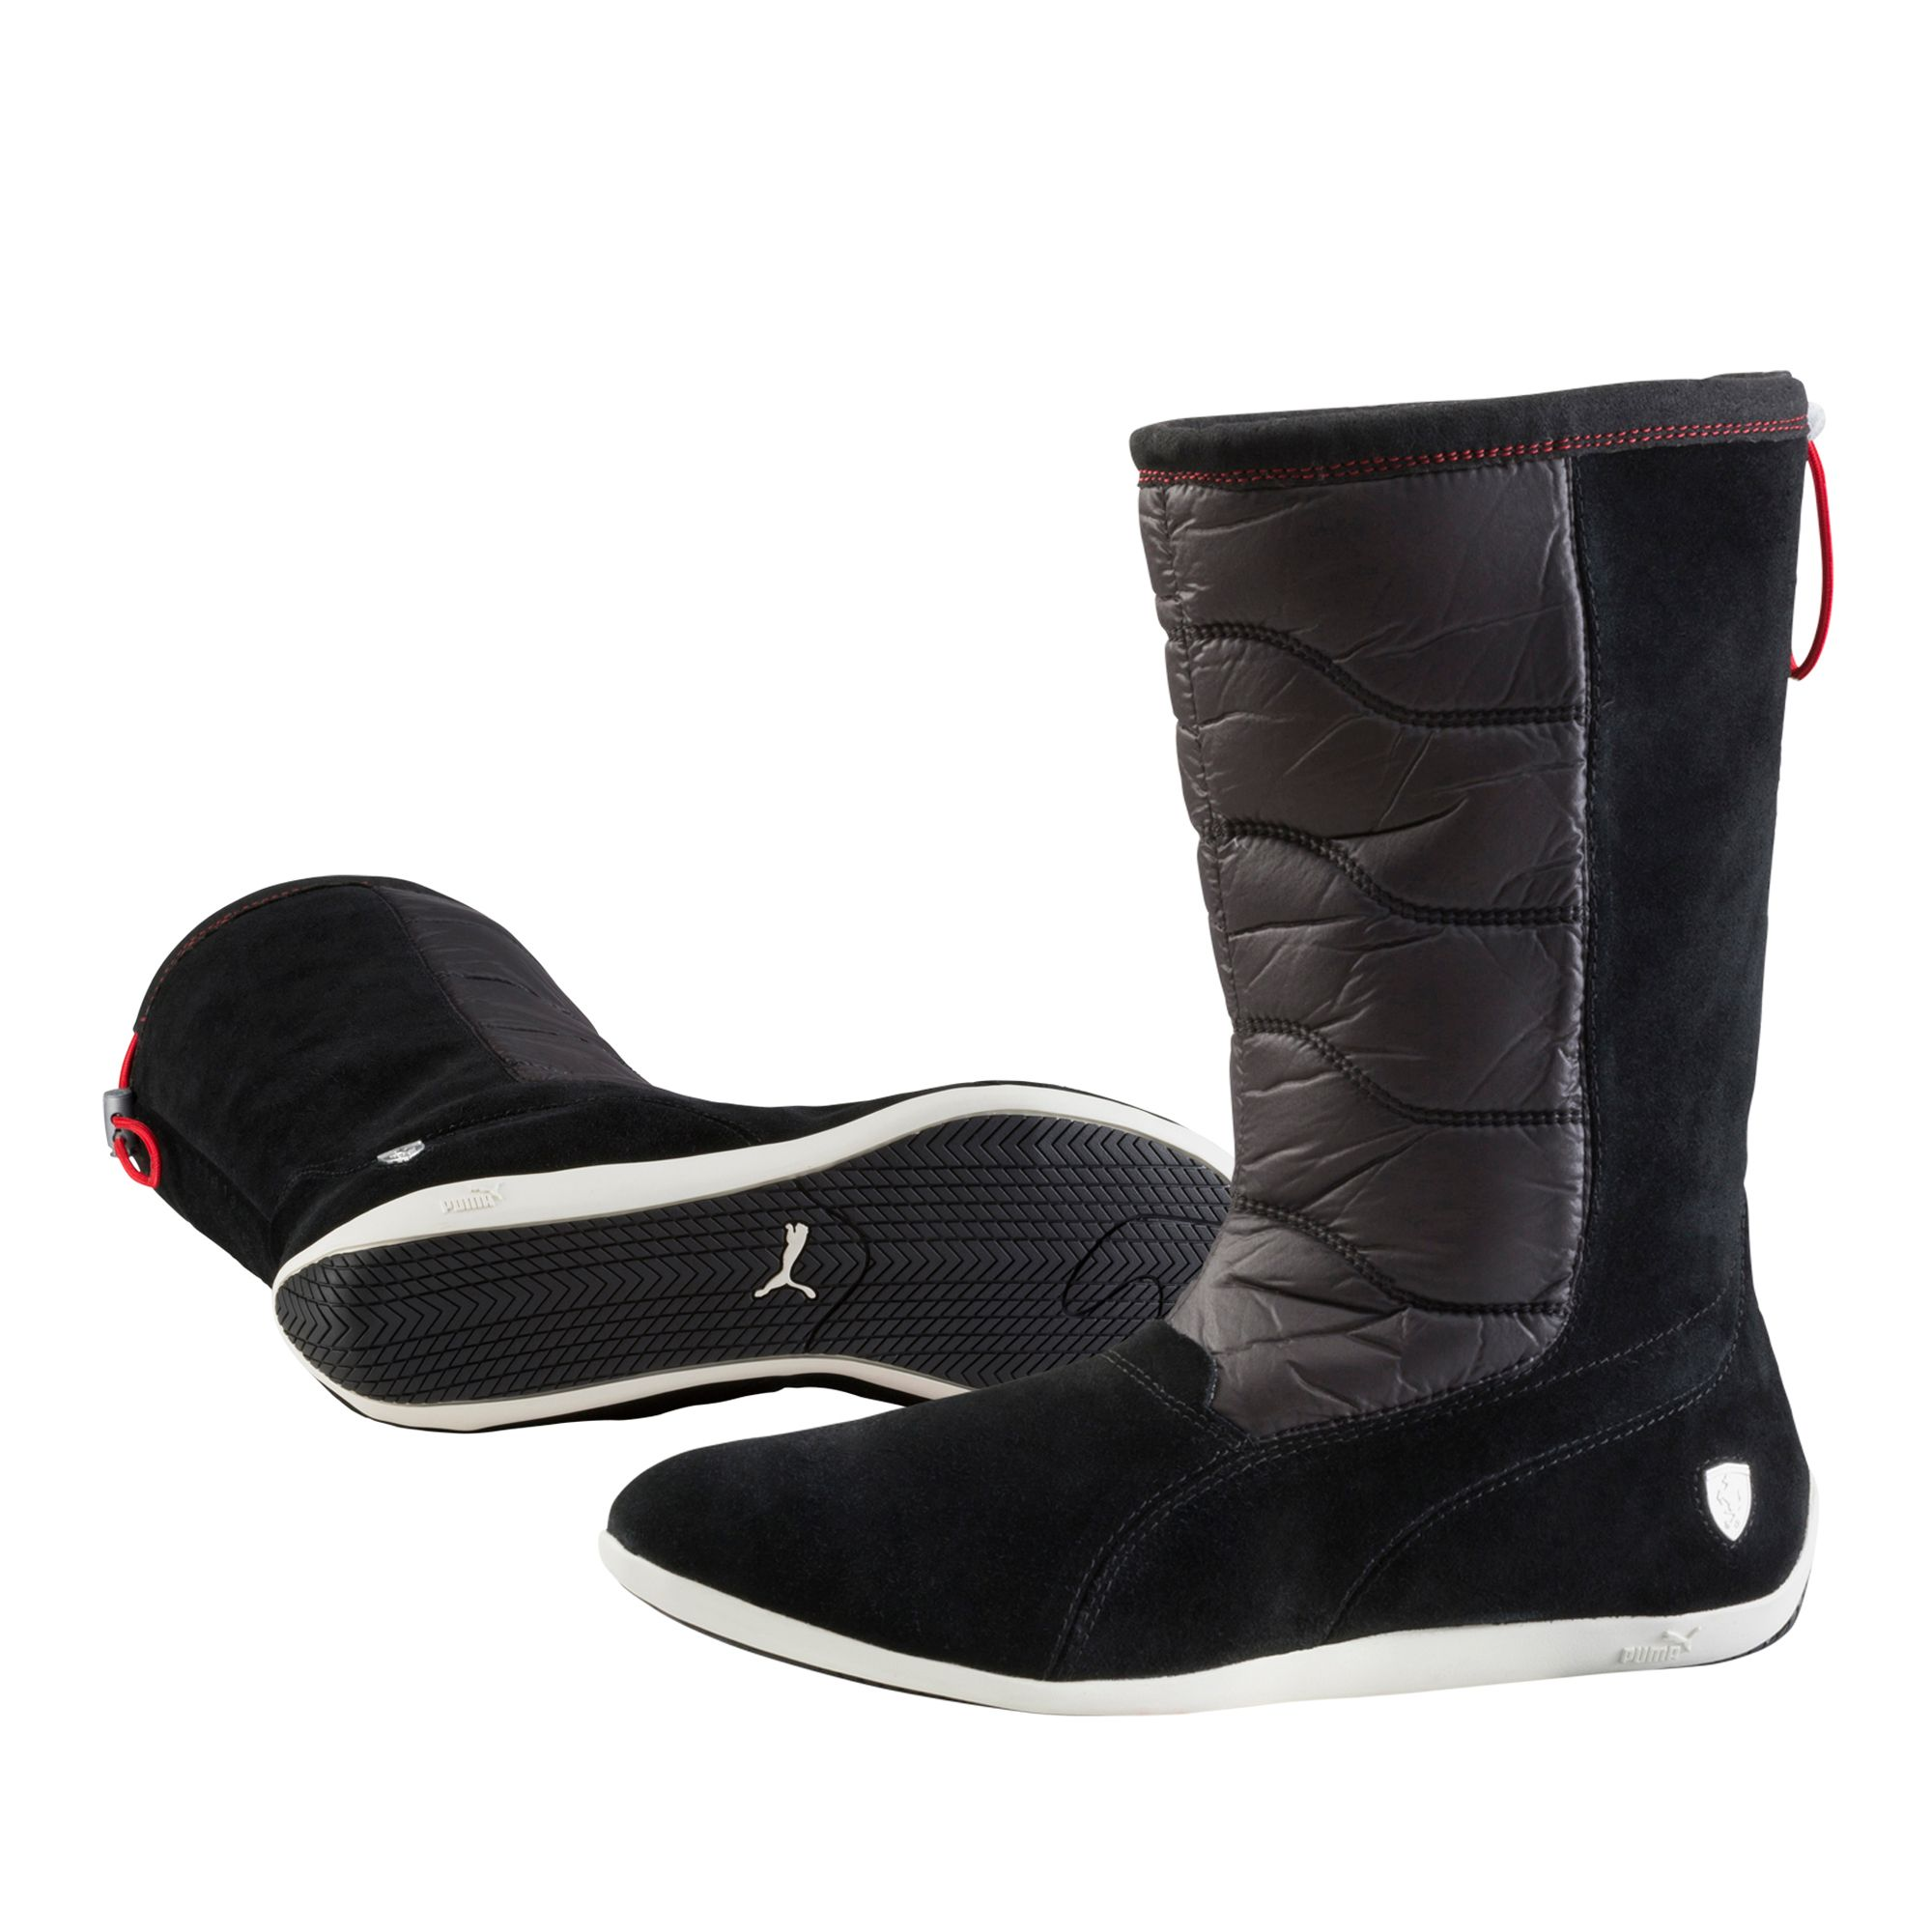 puma ferrari femoto overlap winterstiefel schuhe. Black Bedroom Furniture Sets. Home Design Ideas